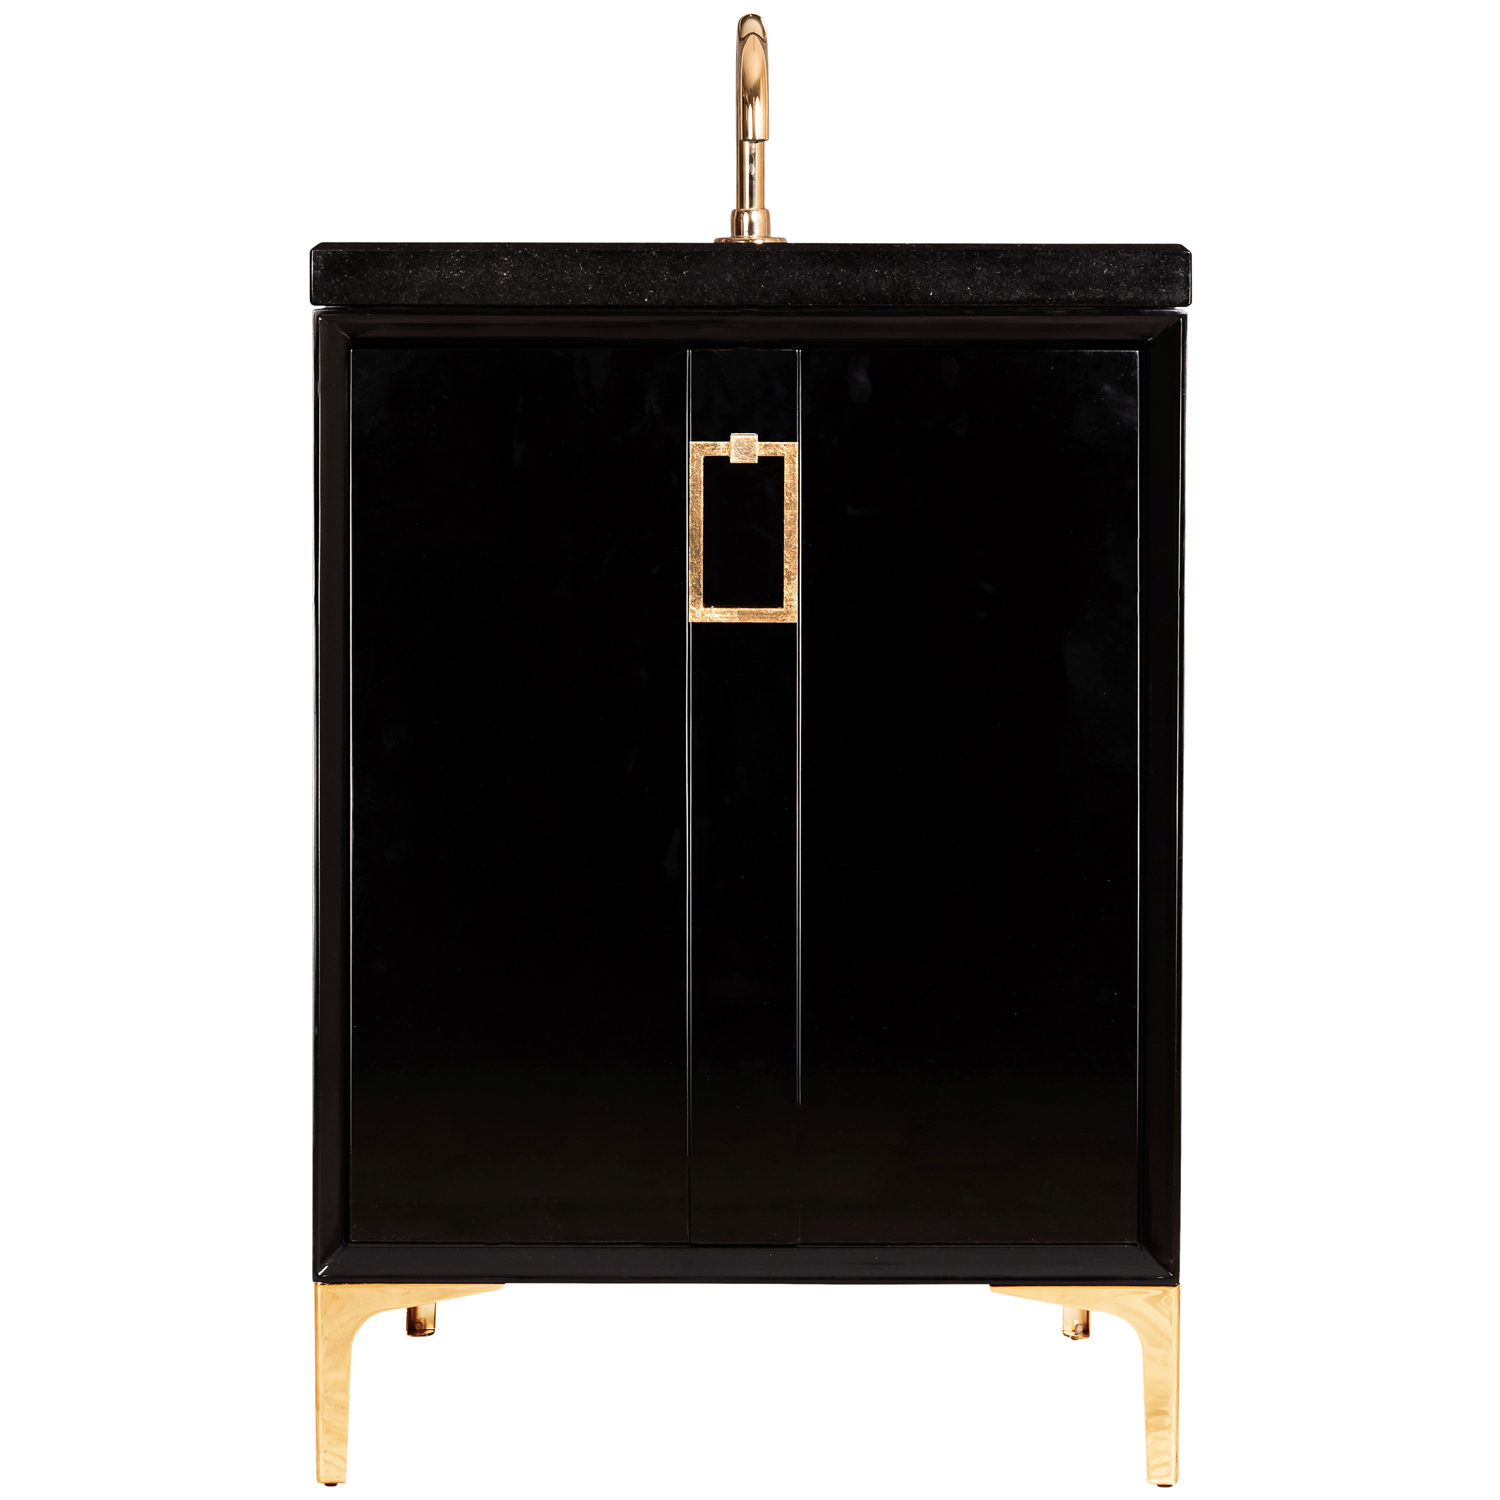 """VAN24B-008 24"""" Black Tuxedo With Coach - Shown with PB (Polished Brass)"""